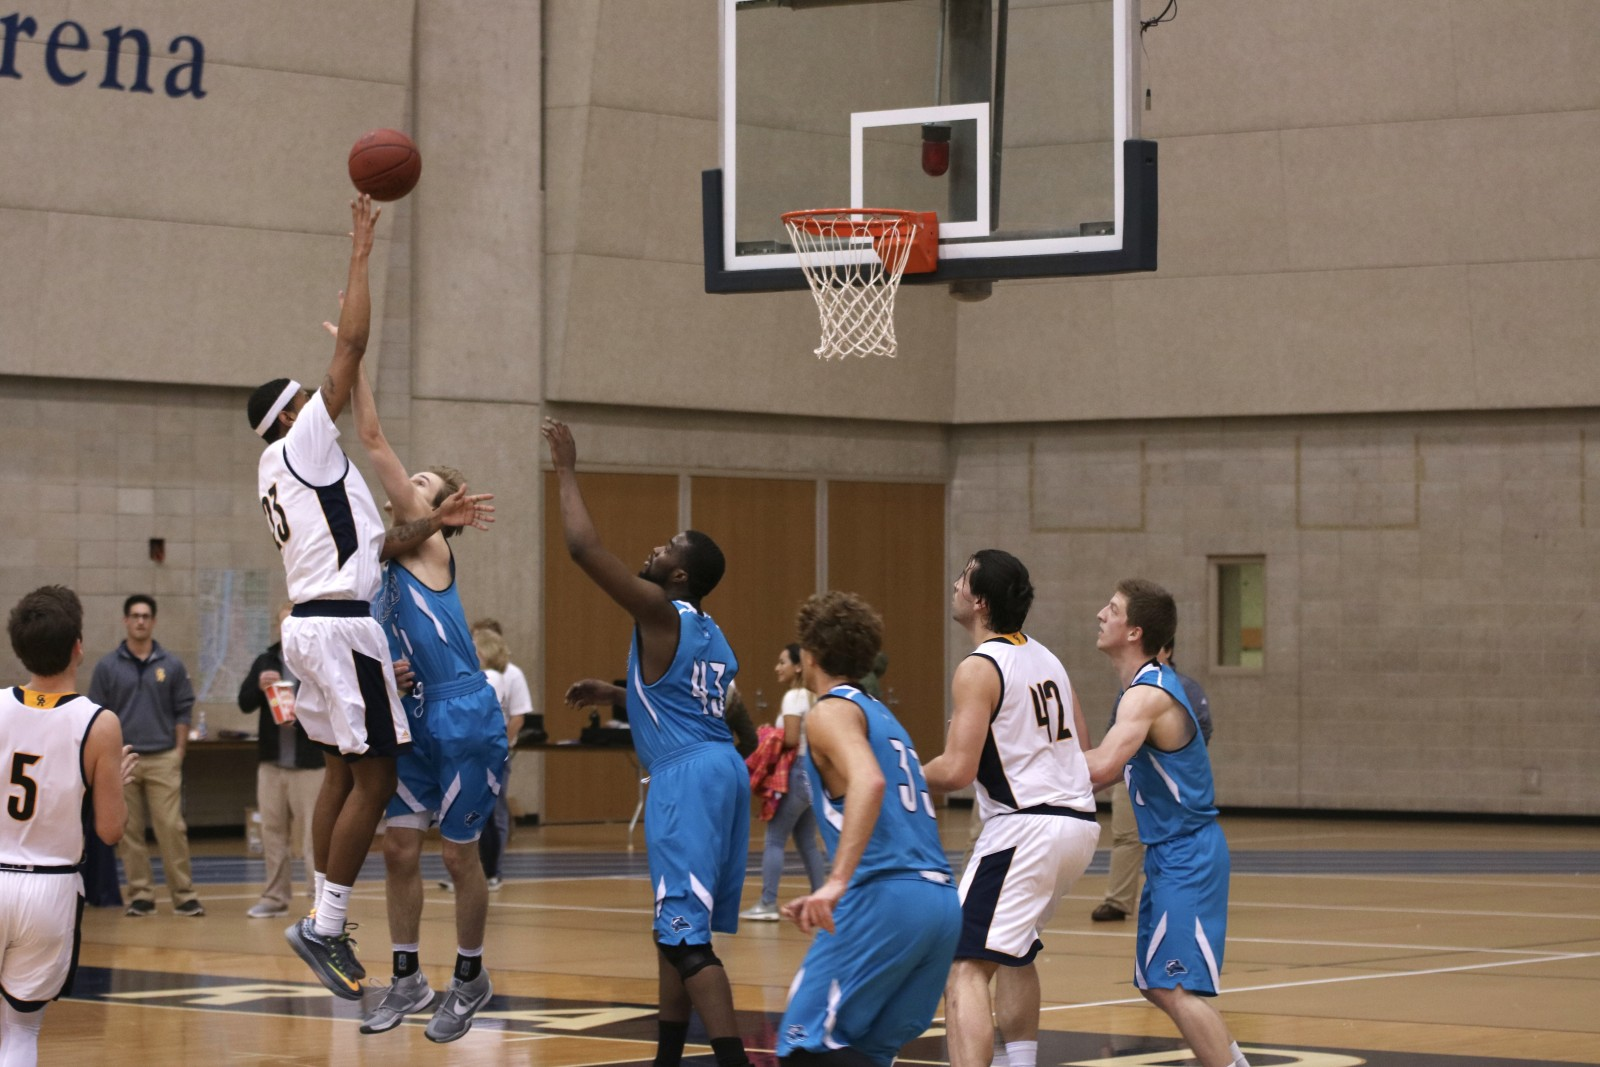 Freshman Forward, #23, Corey Jones pulls up for the floater over KVCC.